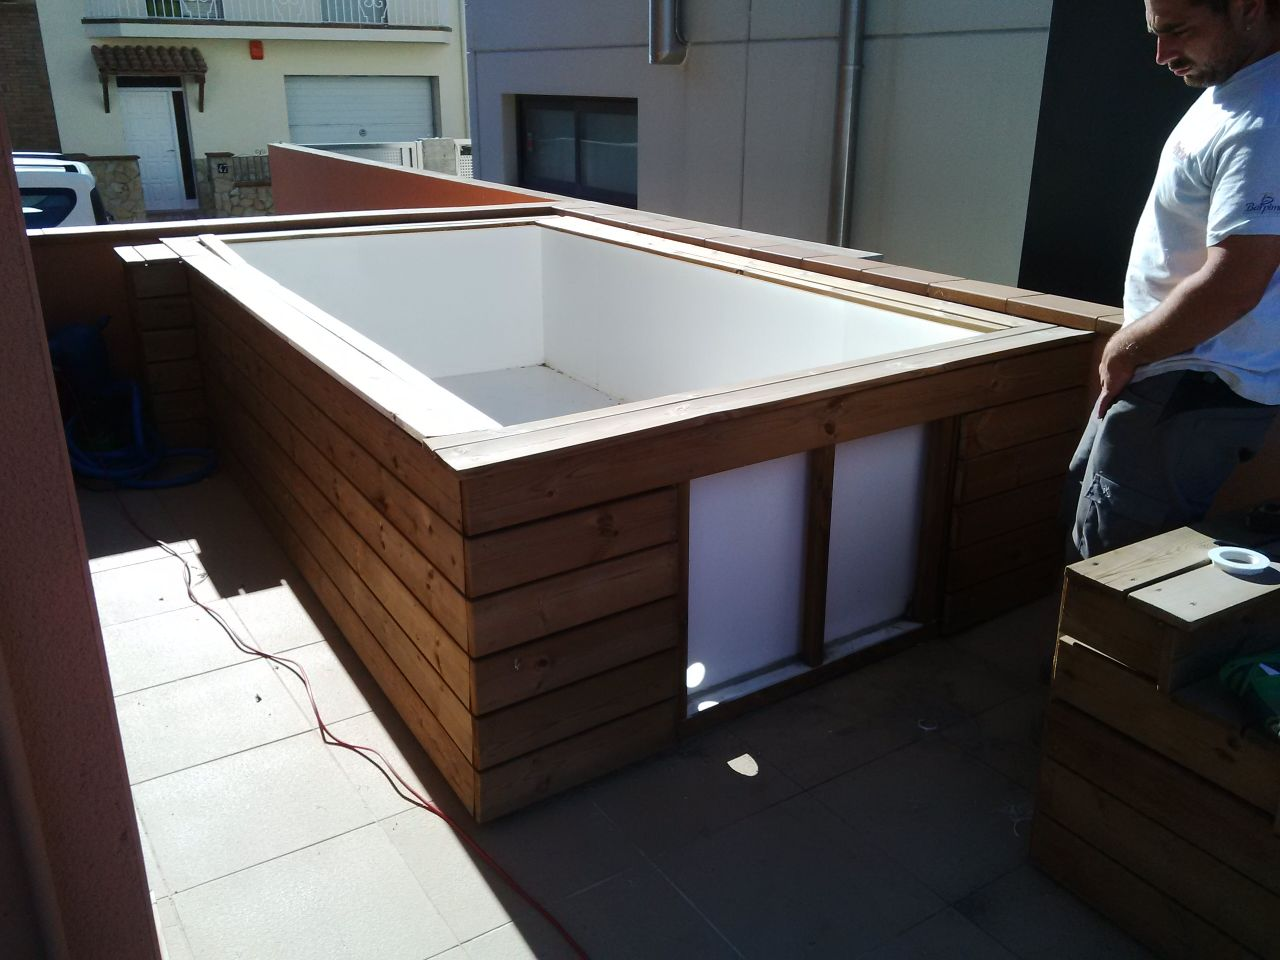 installation piscine sur petite terrasse finition bois blog decopiscine piscines direct d 39 usine. Black Bedroom Furniture Sets. Home Design Ideas